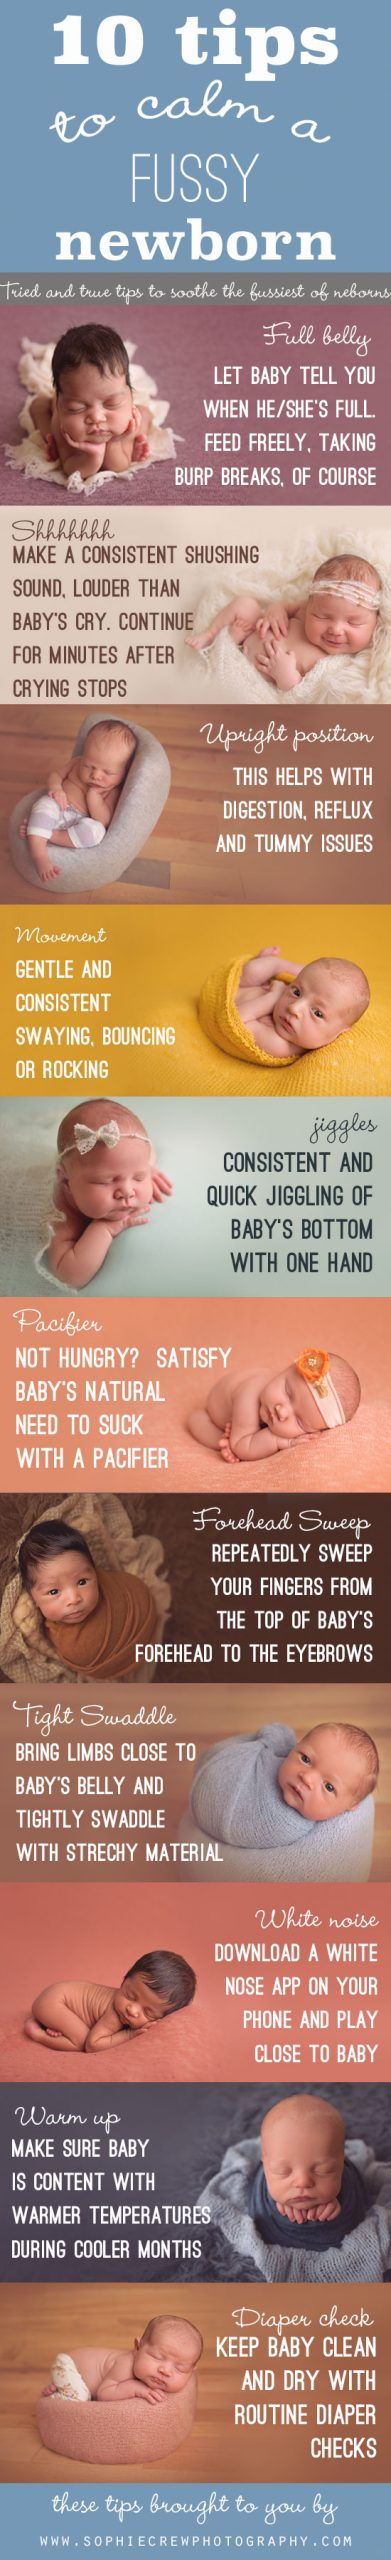 10 Tips to Calm a Fussy Newborn Infographic